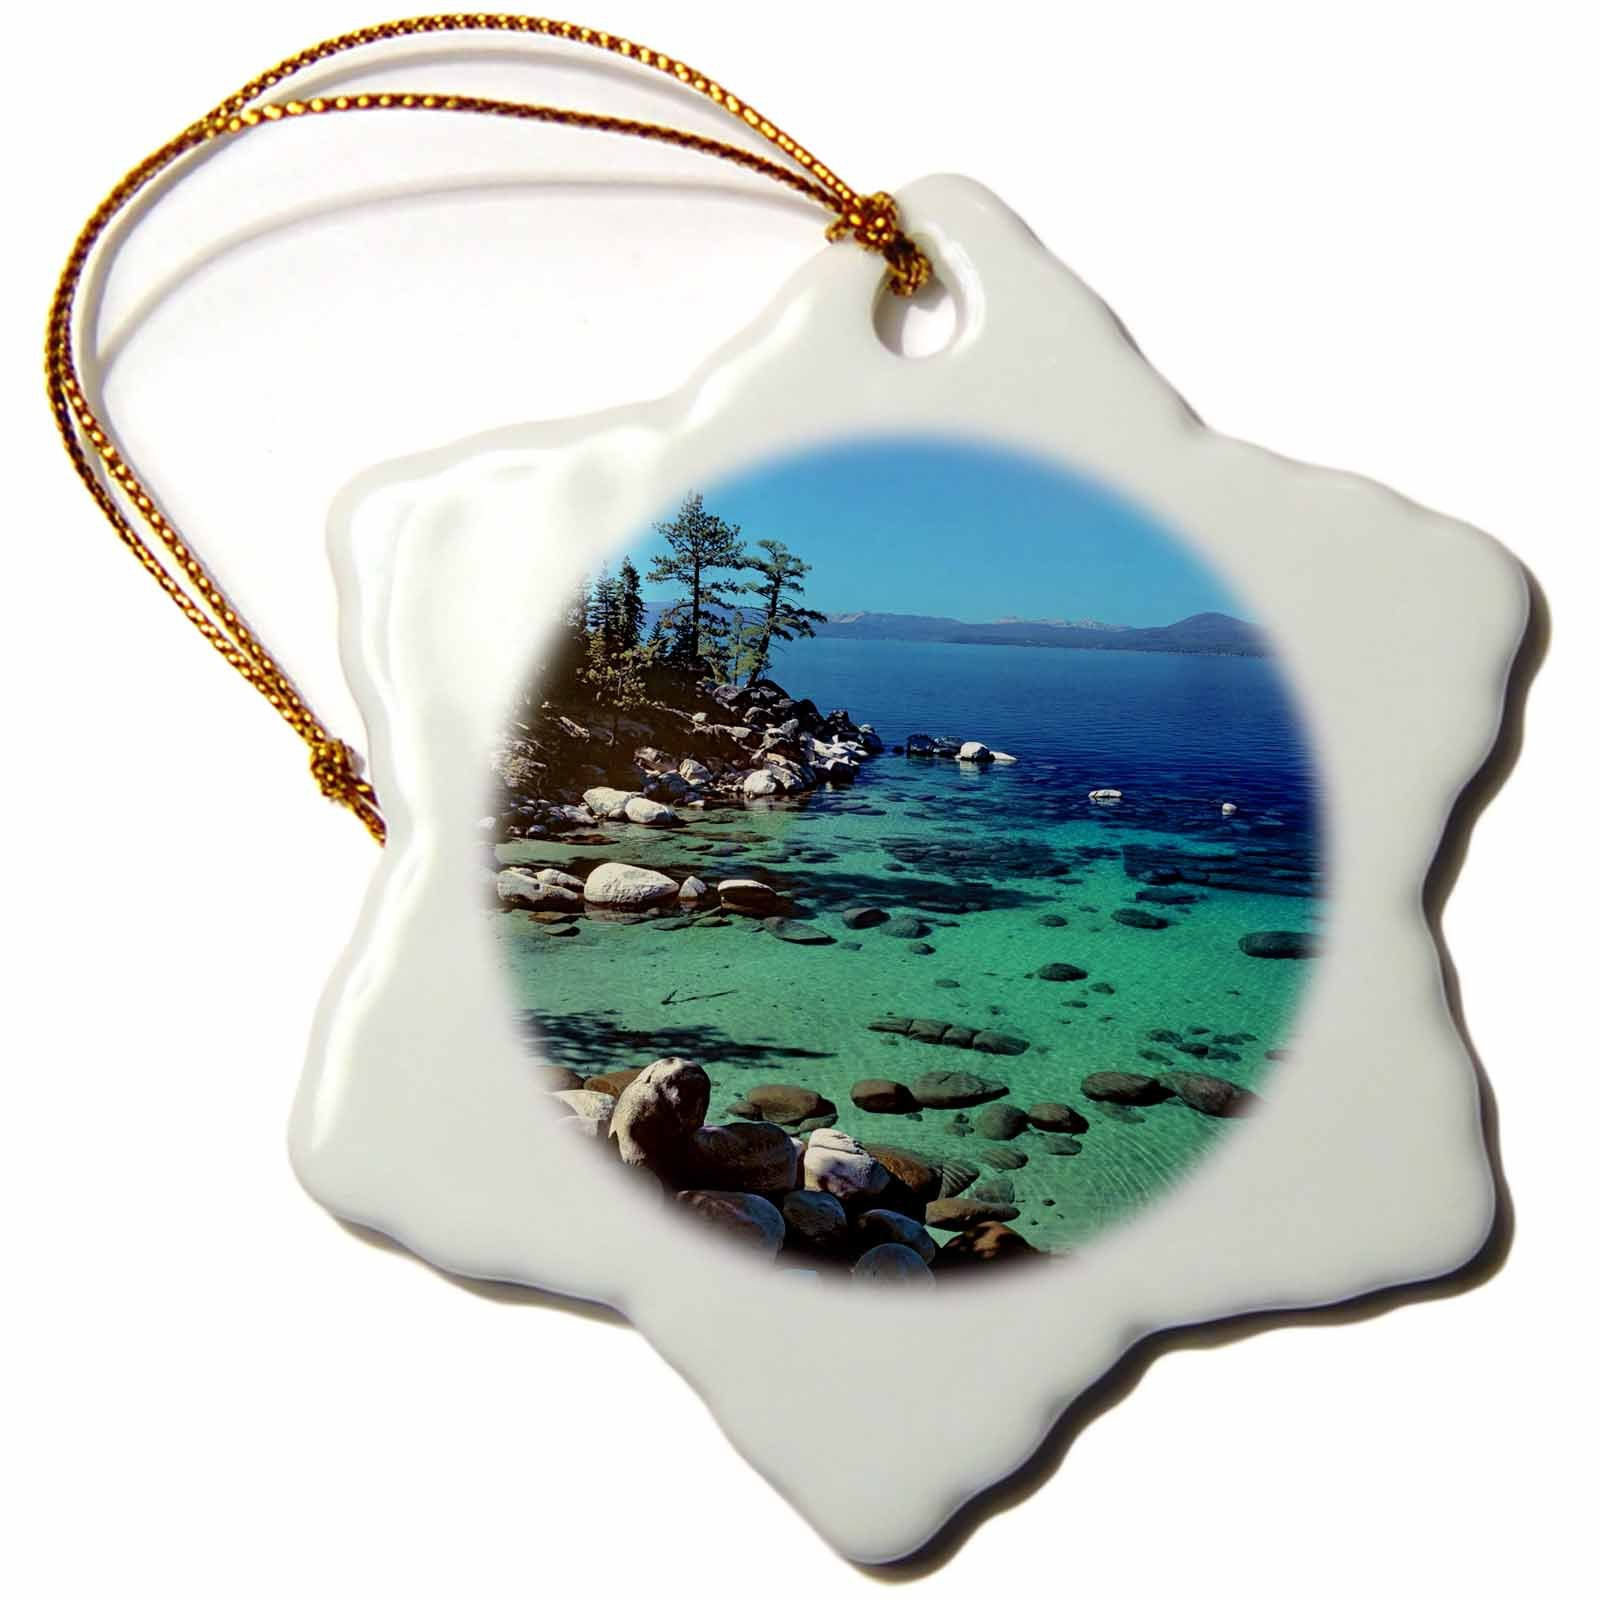 3dRose orn_92271_1 Nevada, Lake Tahoe. Highway 28-Us29 Rer0011-Ric Ergenbright-Snowflake Ornament, 3-Inch, Porcelain